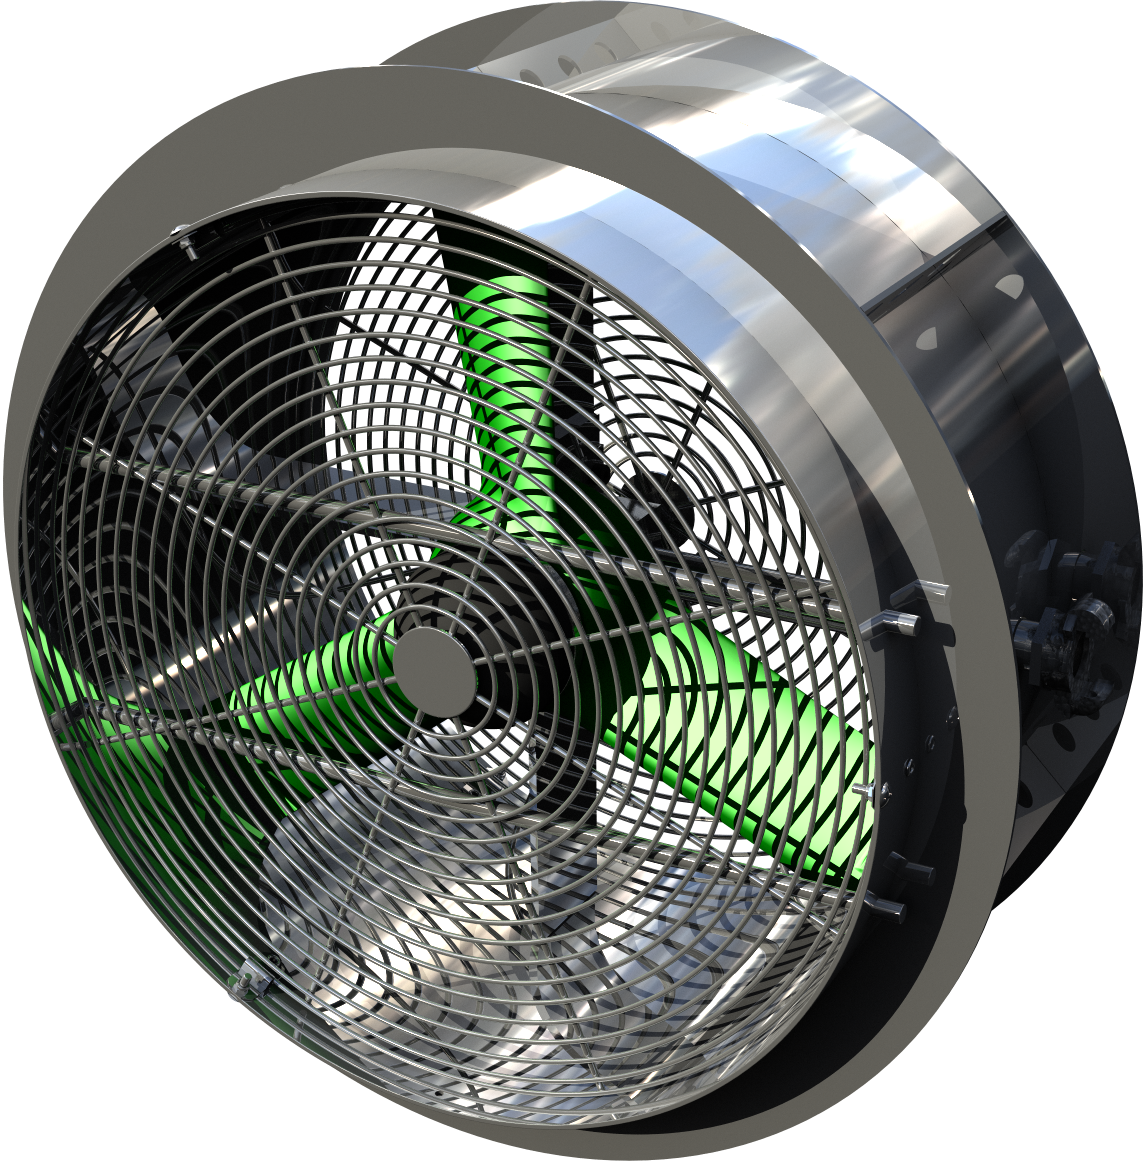 Typhoon 500mm Steel Fan - Clarks Mining Services